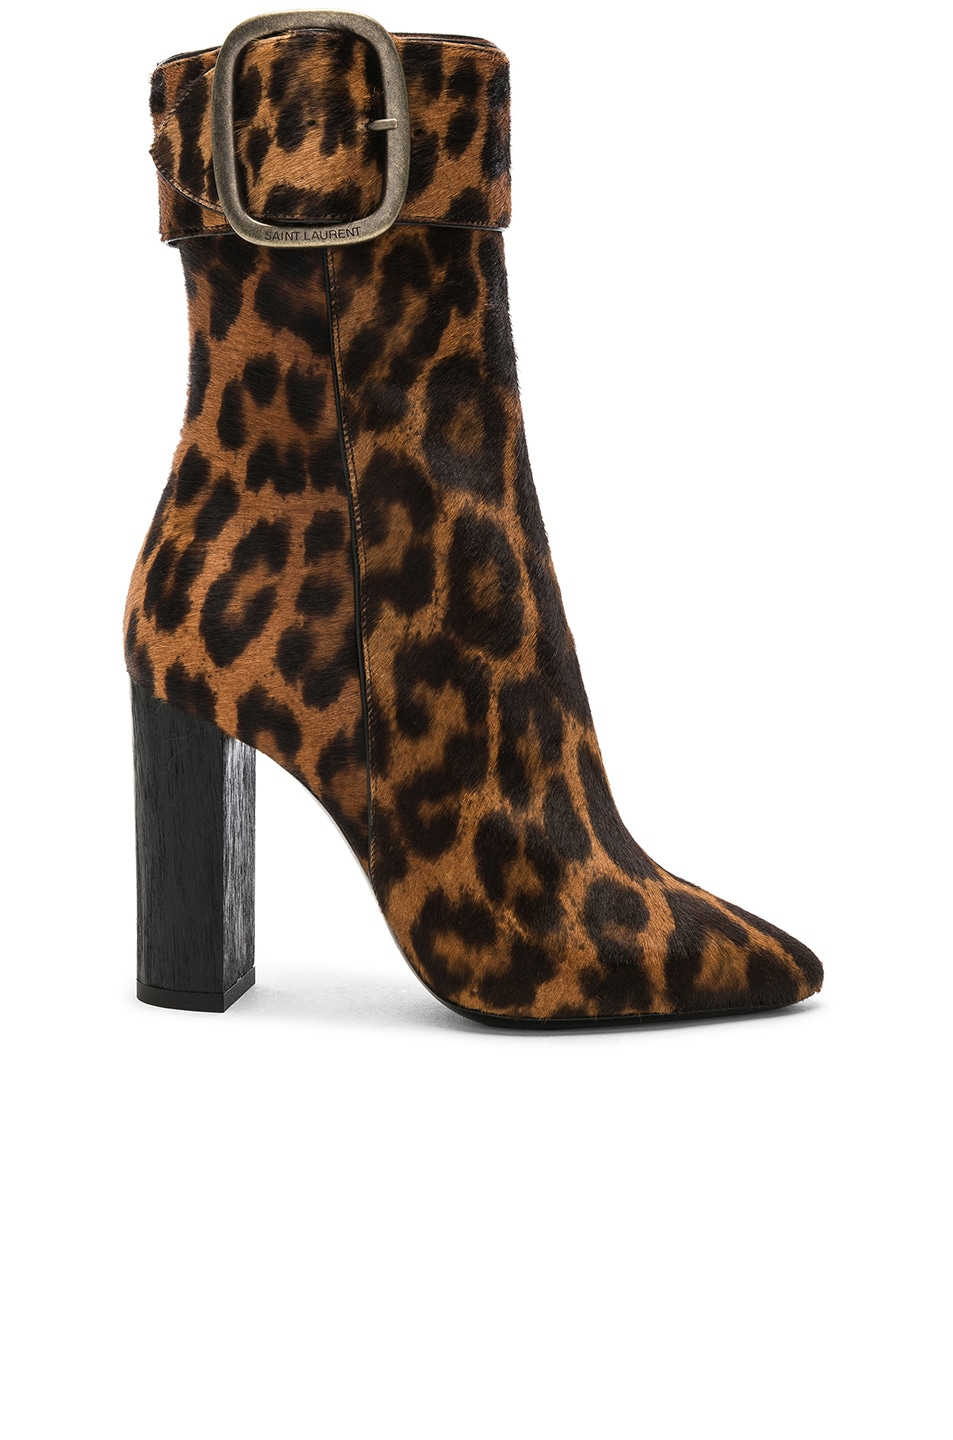 Image 1 of Saint Laurent Leopard Print Pony Hair Joplin Buckle Boots in Natural